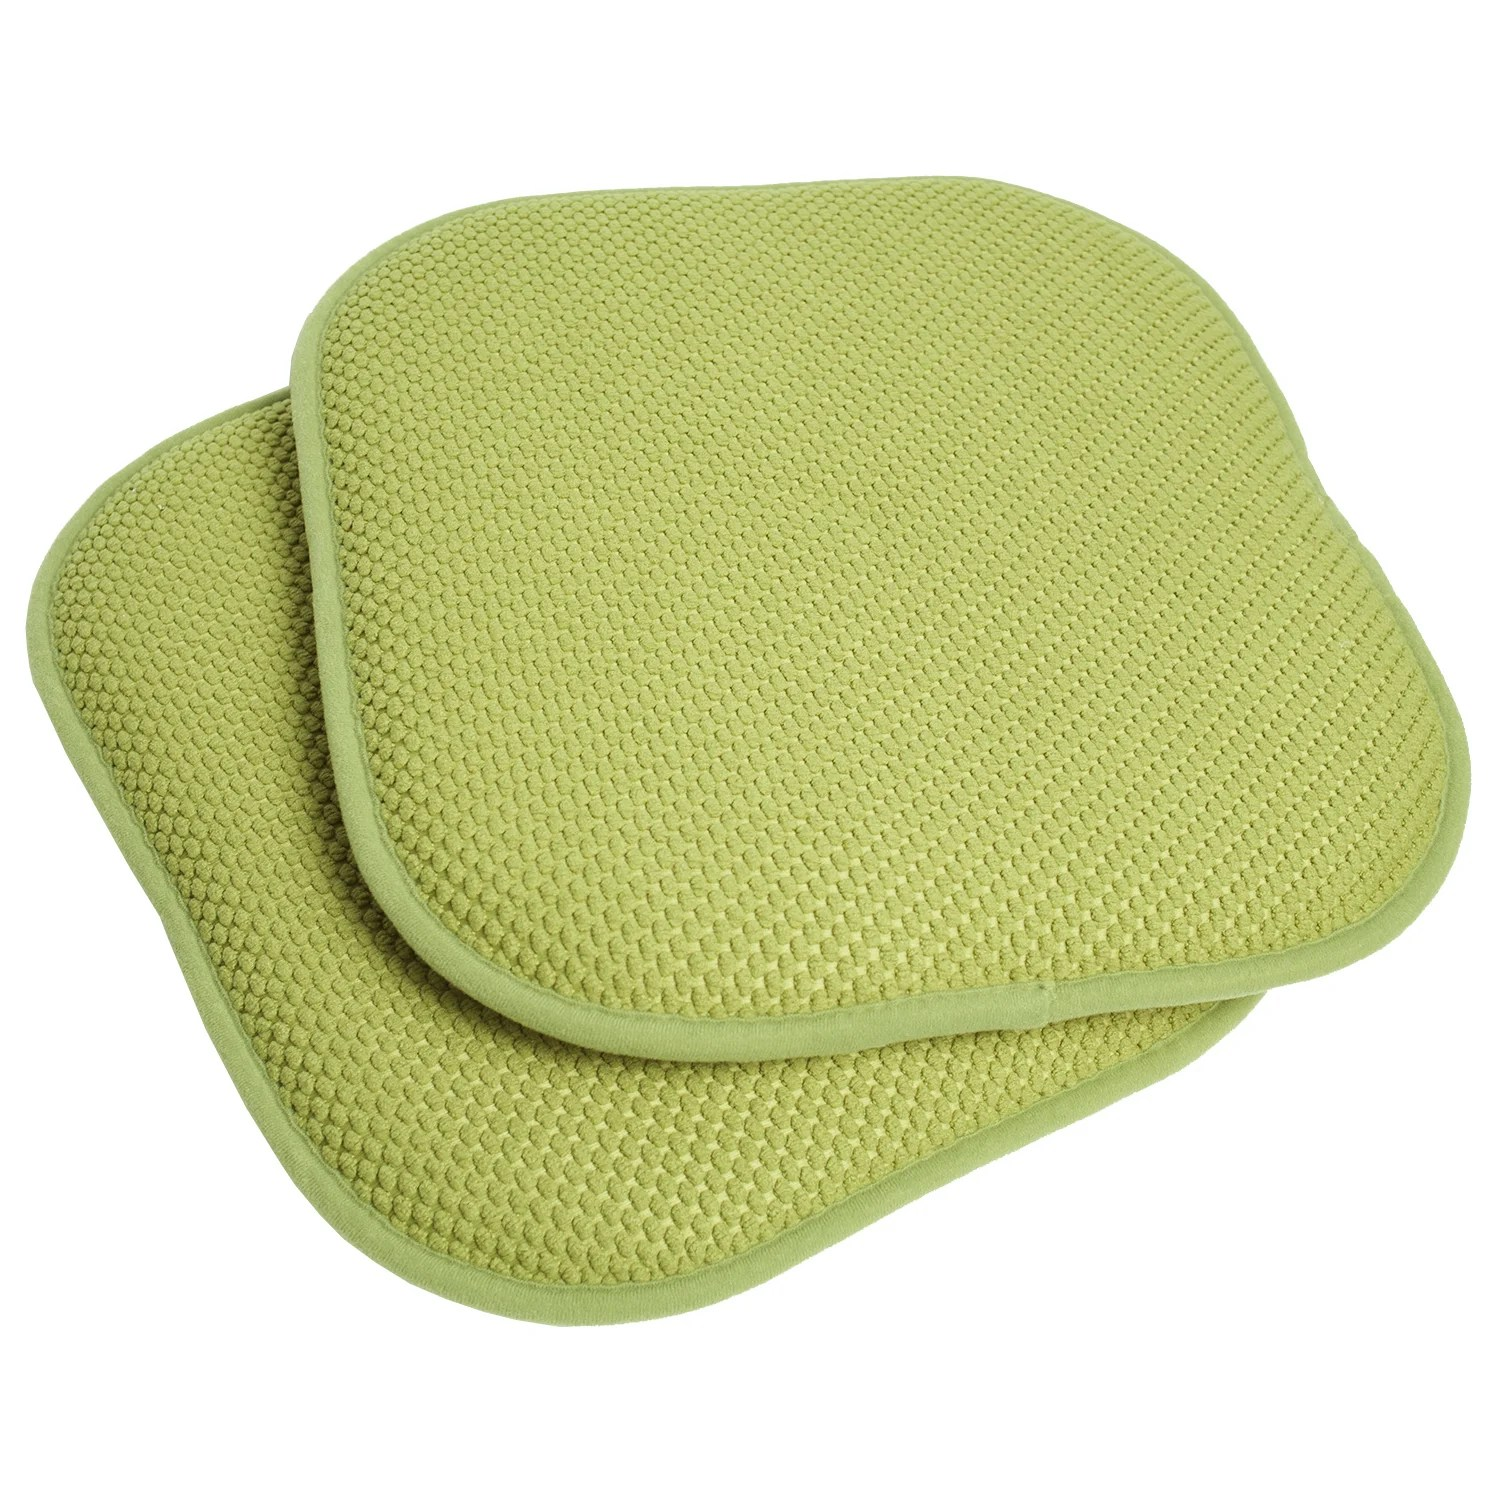 Foam Chair Cushions 16x16 Memory Foam Chair Pad Seat Cushion With Non Slip